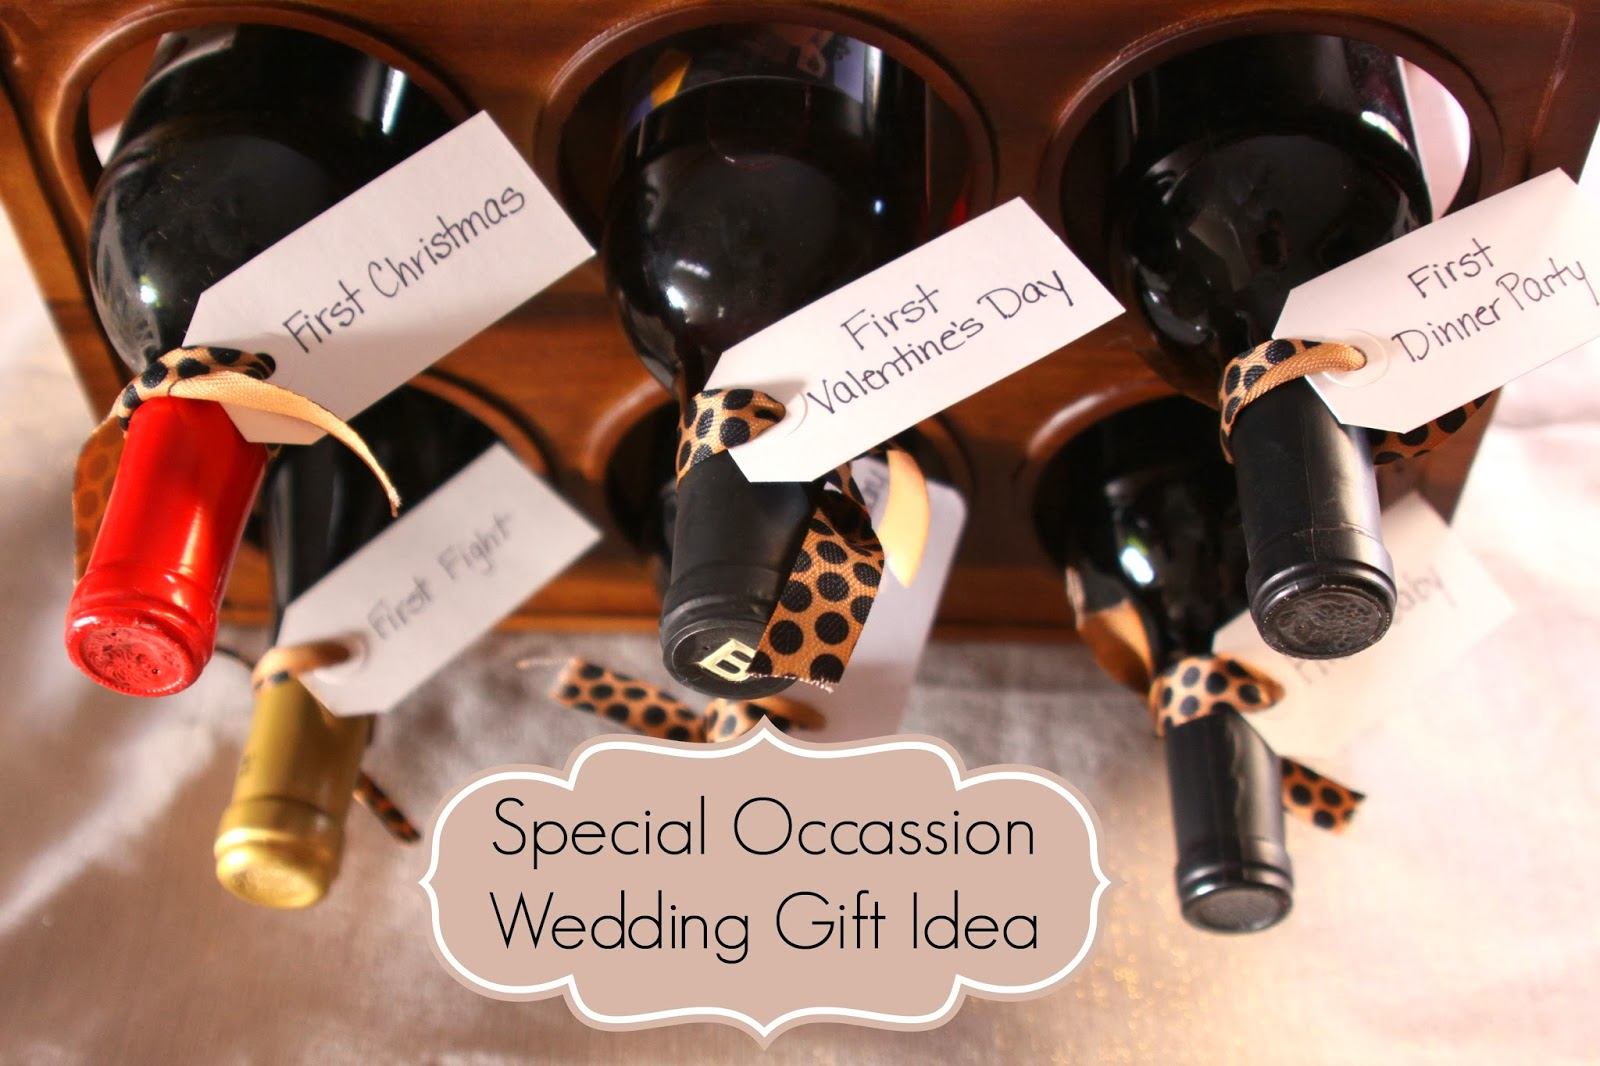 Wedding Gifts For Sisters: Thoughtful Wedding Gifts For Sister